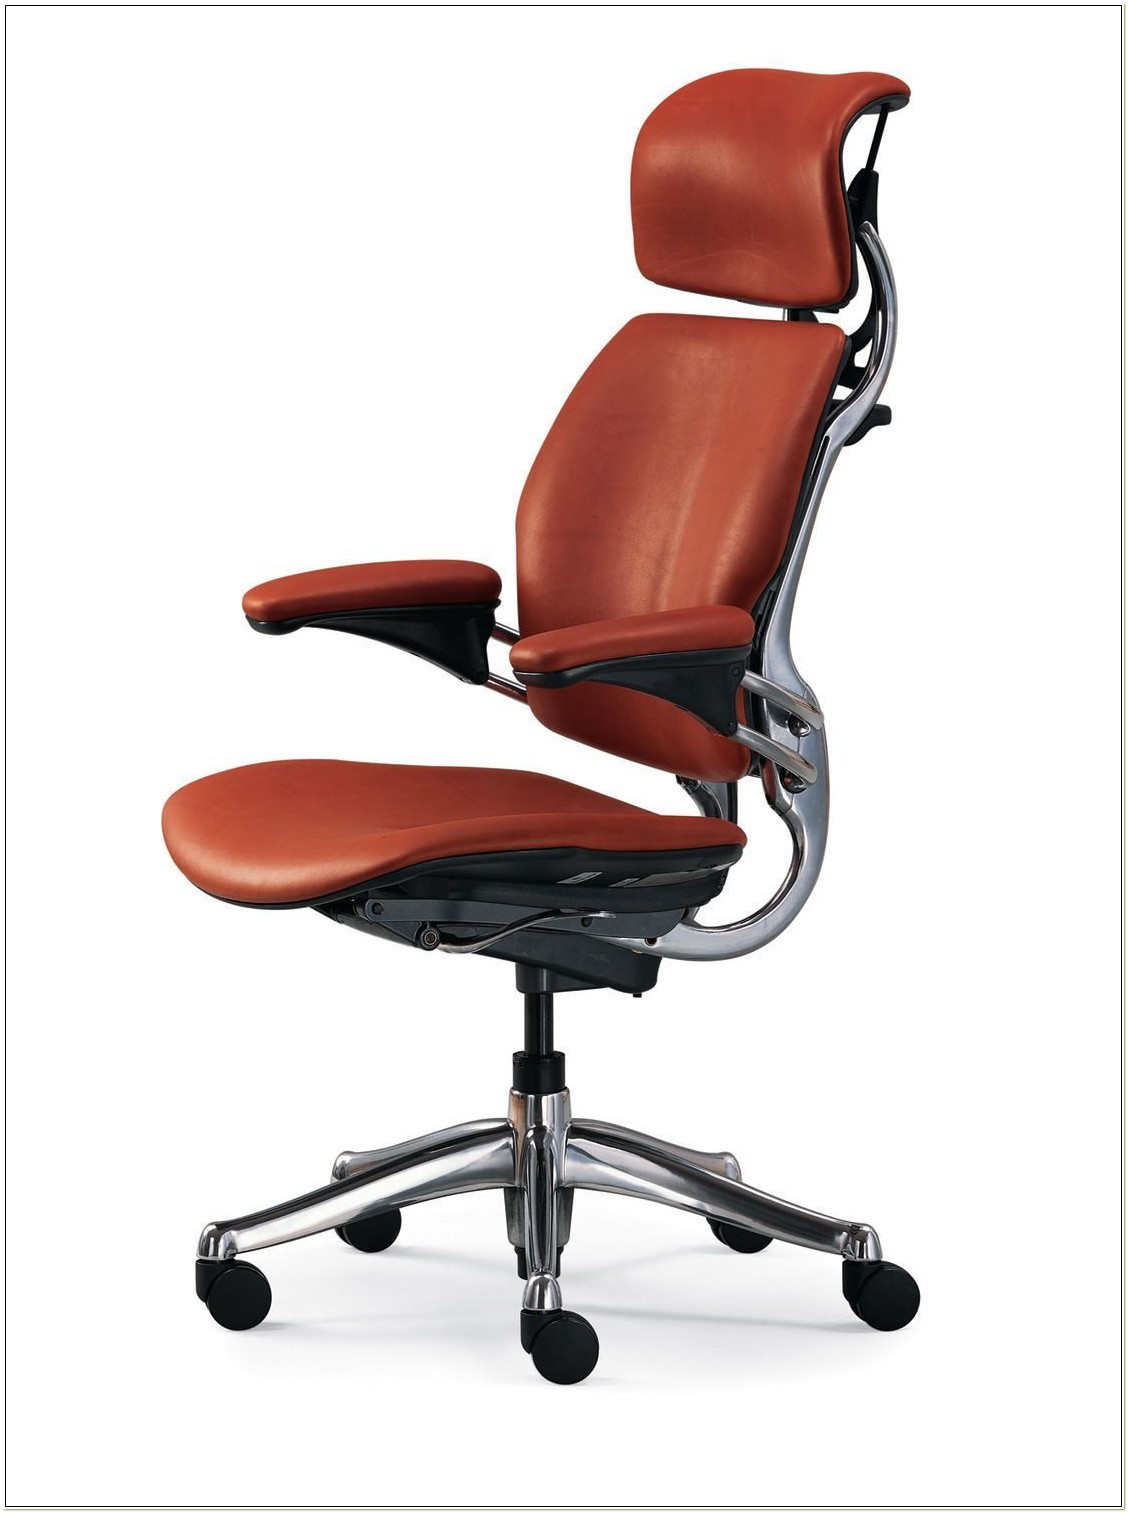 Highest Rated Office Chairs 2015